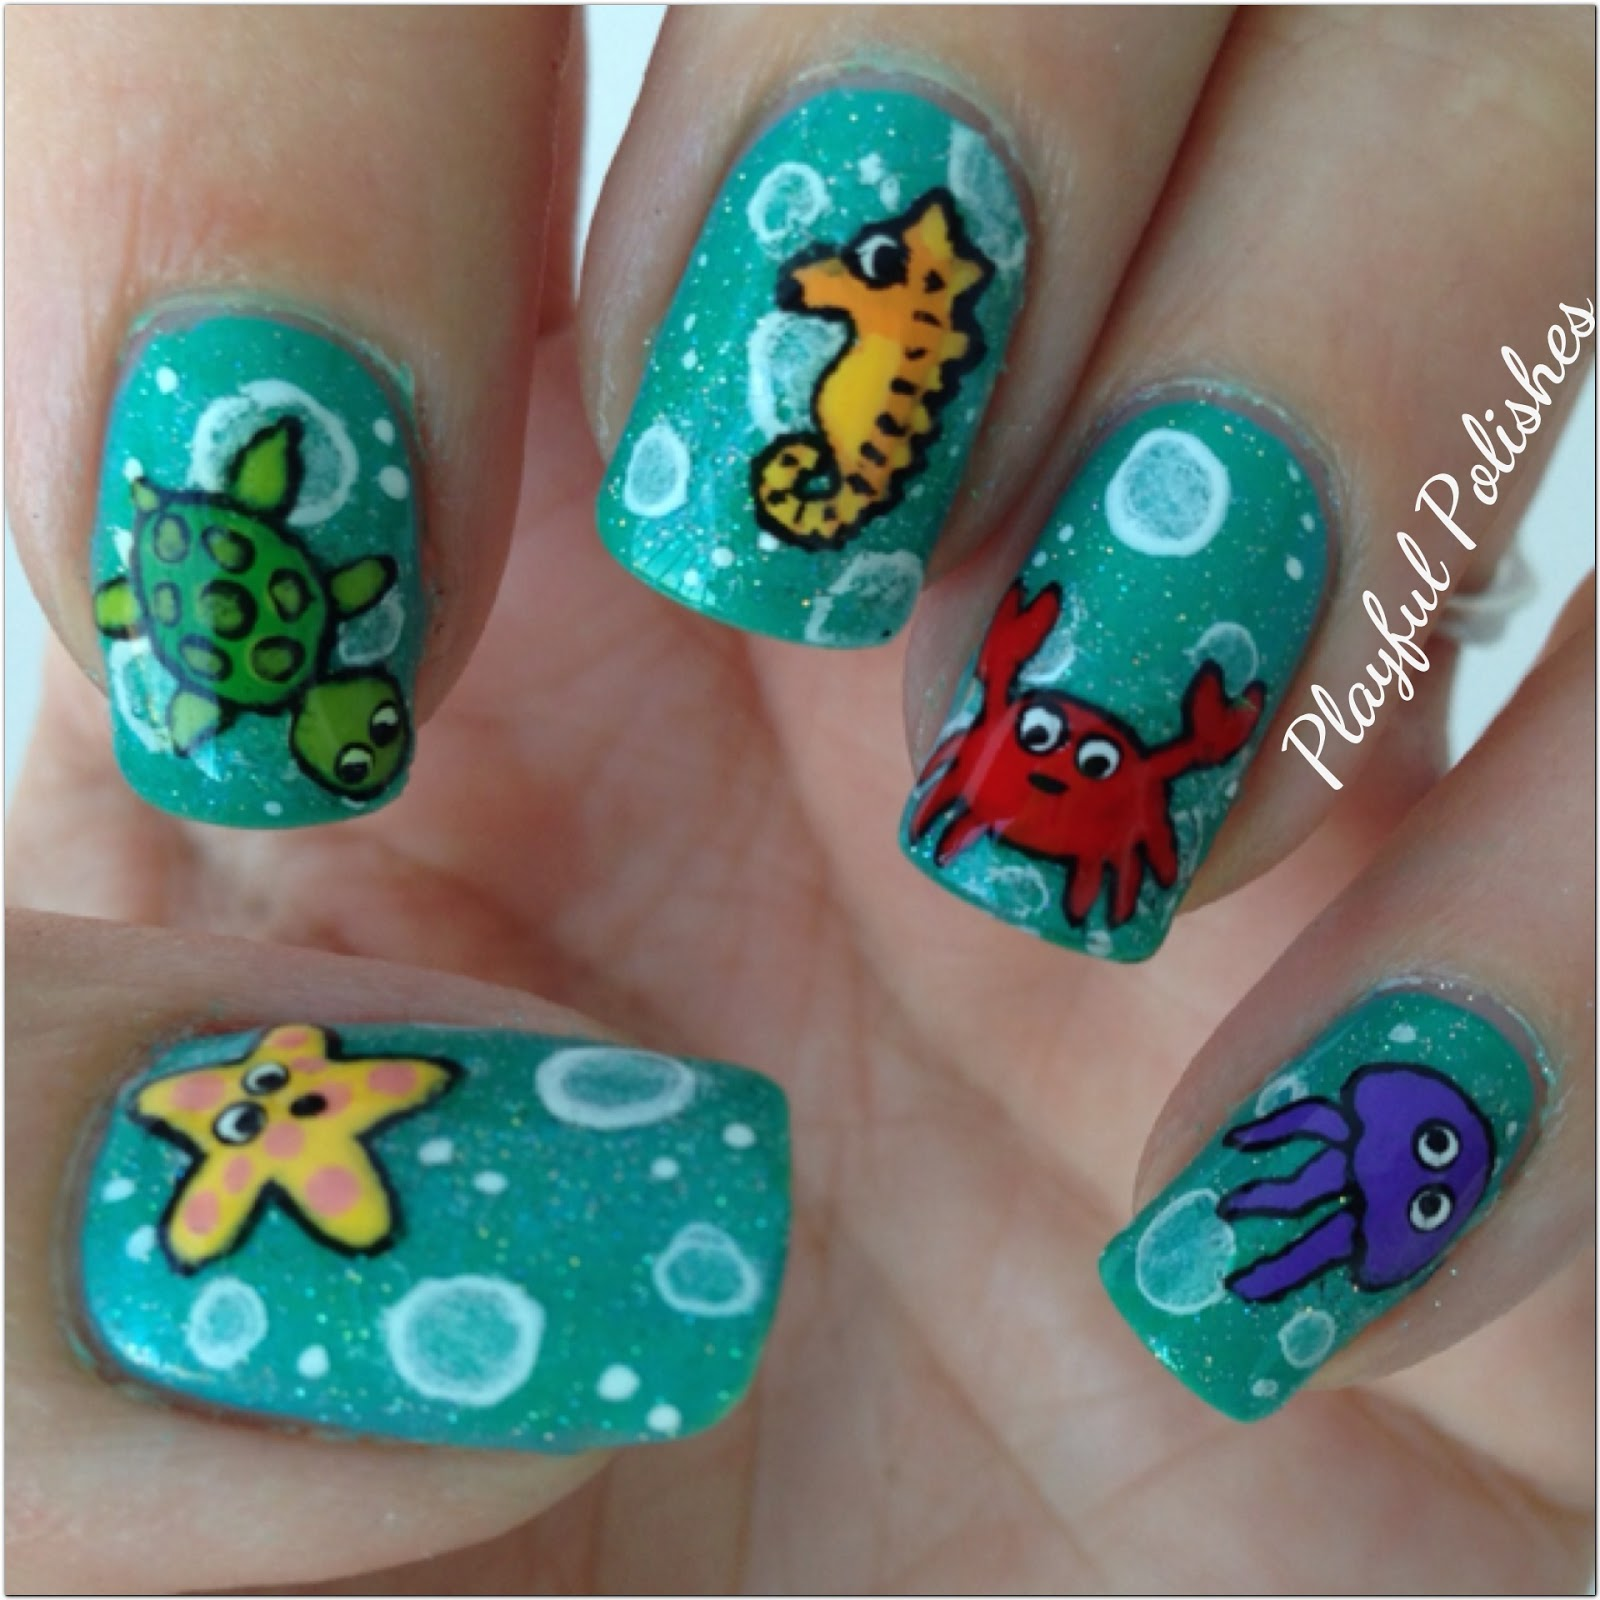 Playful Polishes June Nail Art Challenge Ocean Nails: Playful Polishes: JUNE NAIL ART CHALLENGE: SEA CRITTERS